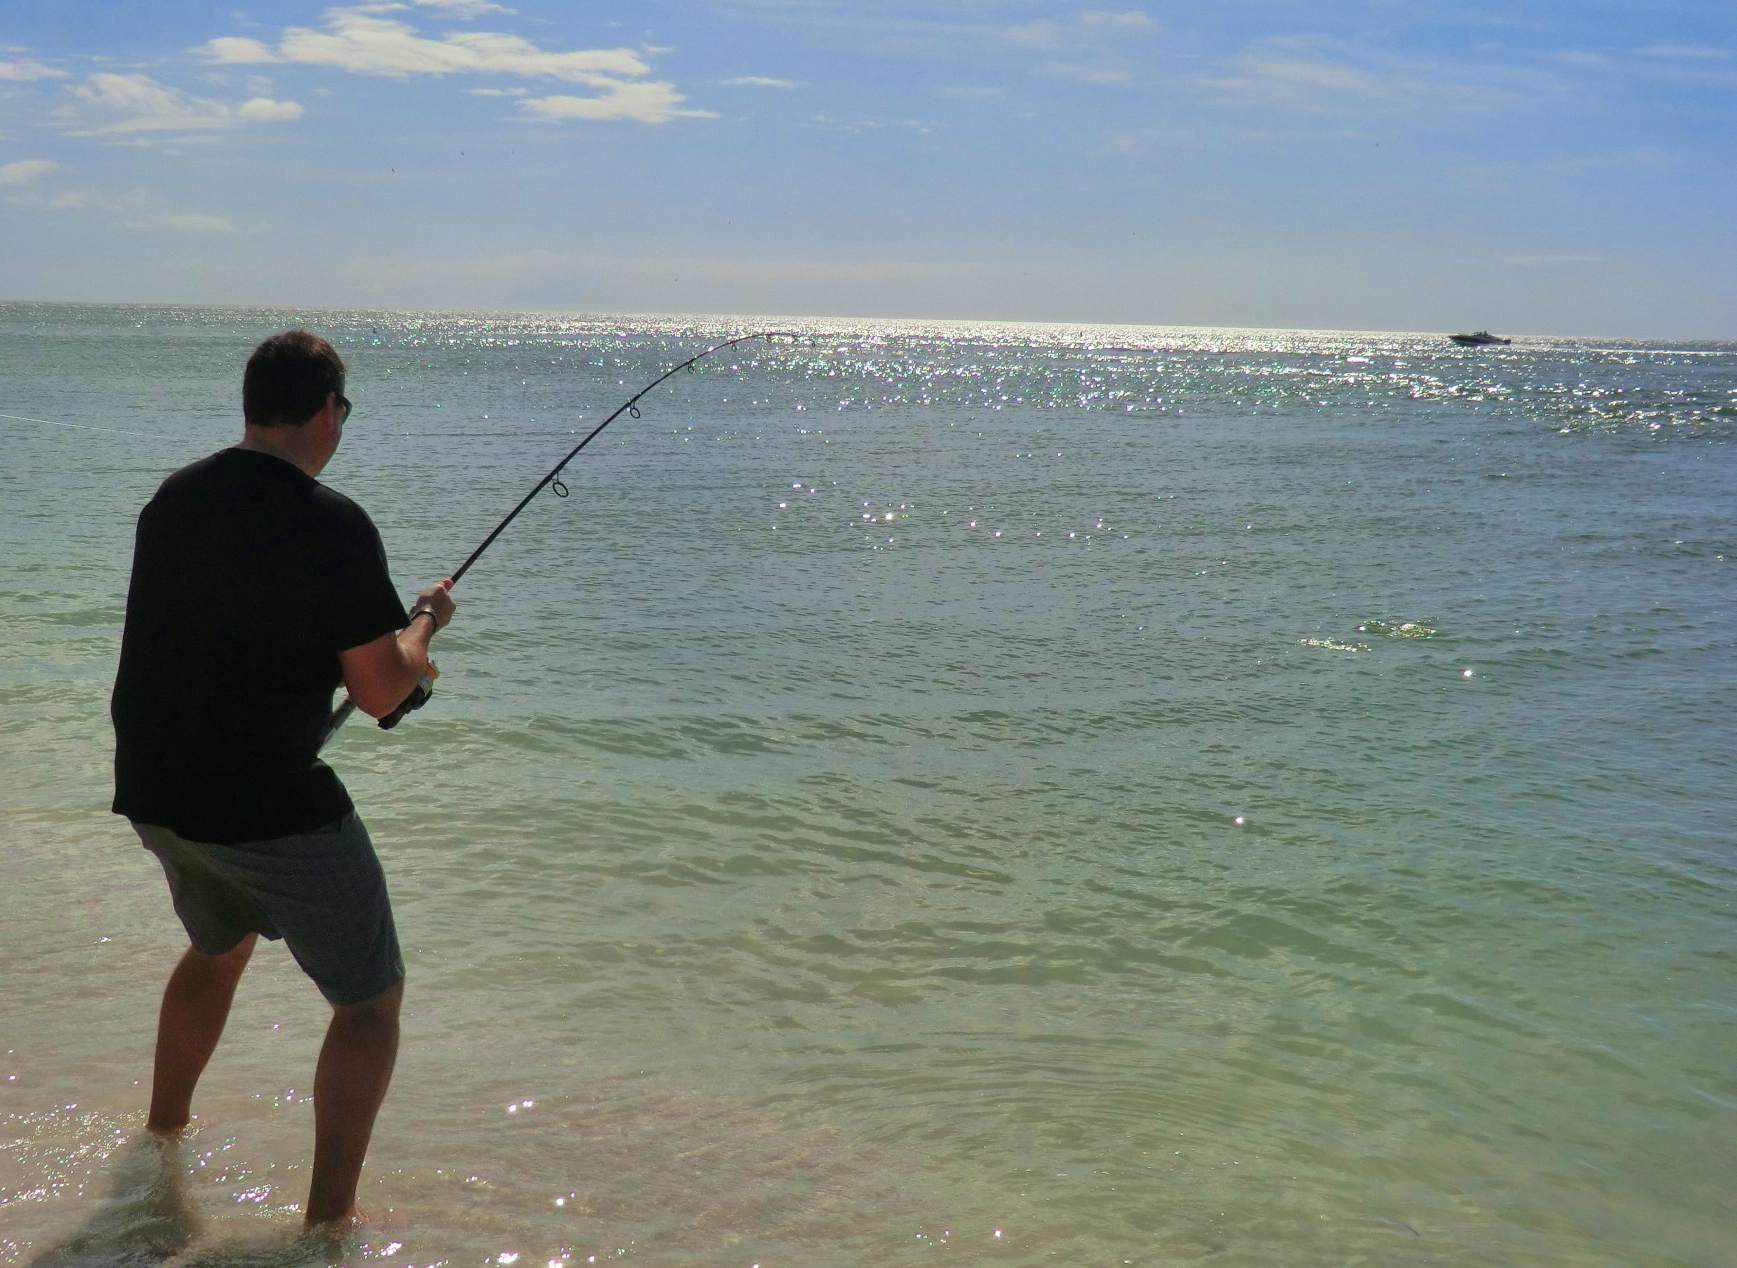 Tips for beach snook fishing | The Intrepid Angler